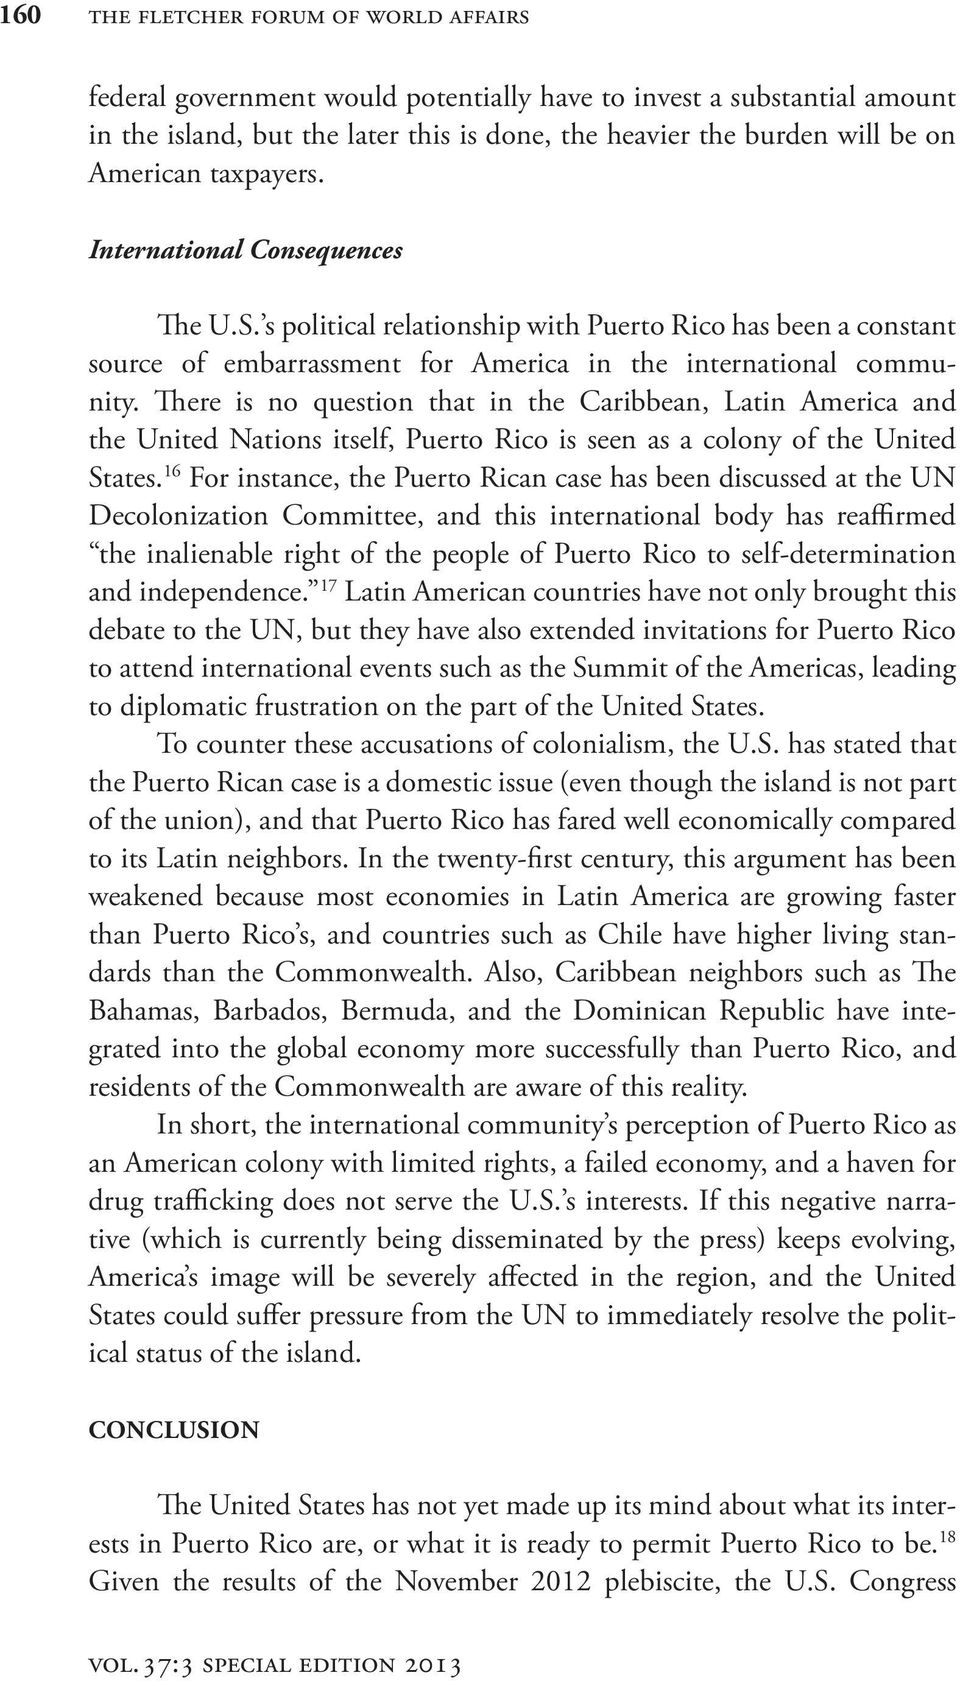 There is no question that in the Caribbean, Latin America and the United Nations itself, Puerto Rico is seen as a colony of the United States.